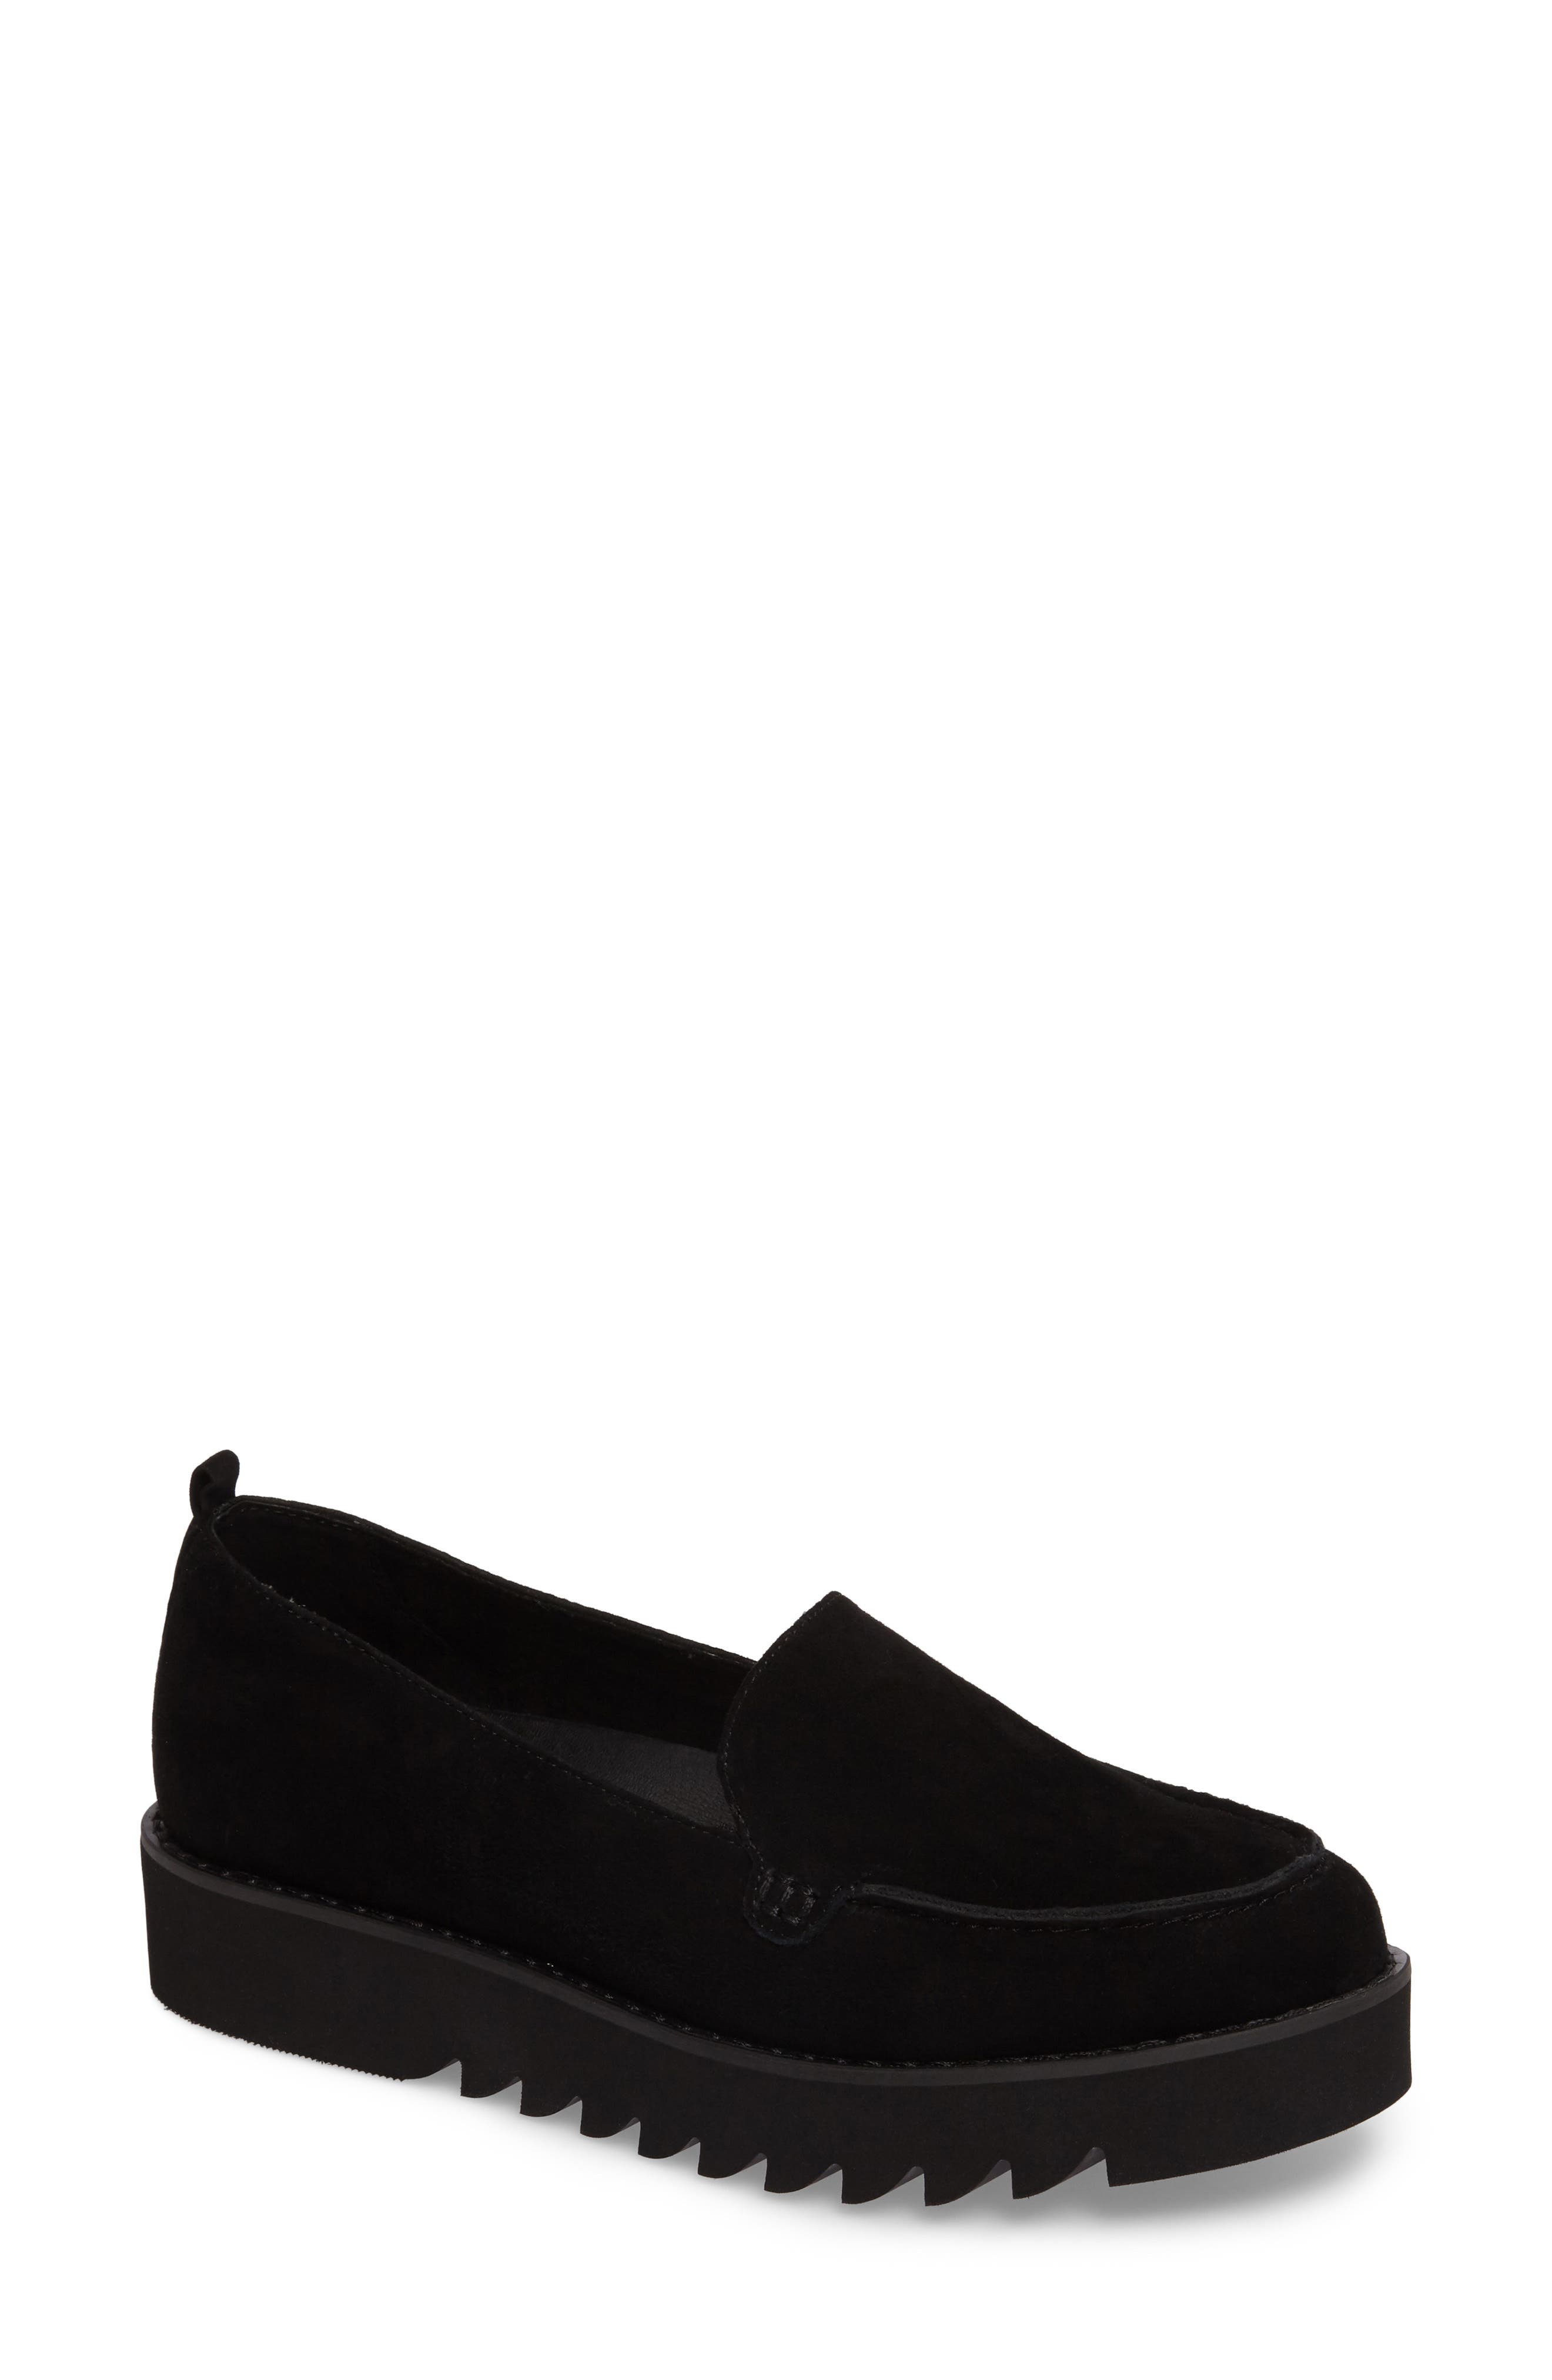 Kendall Loafer,                             Main thumbnail 1, color,                             BLACK SUEDE